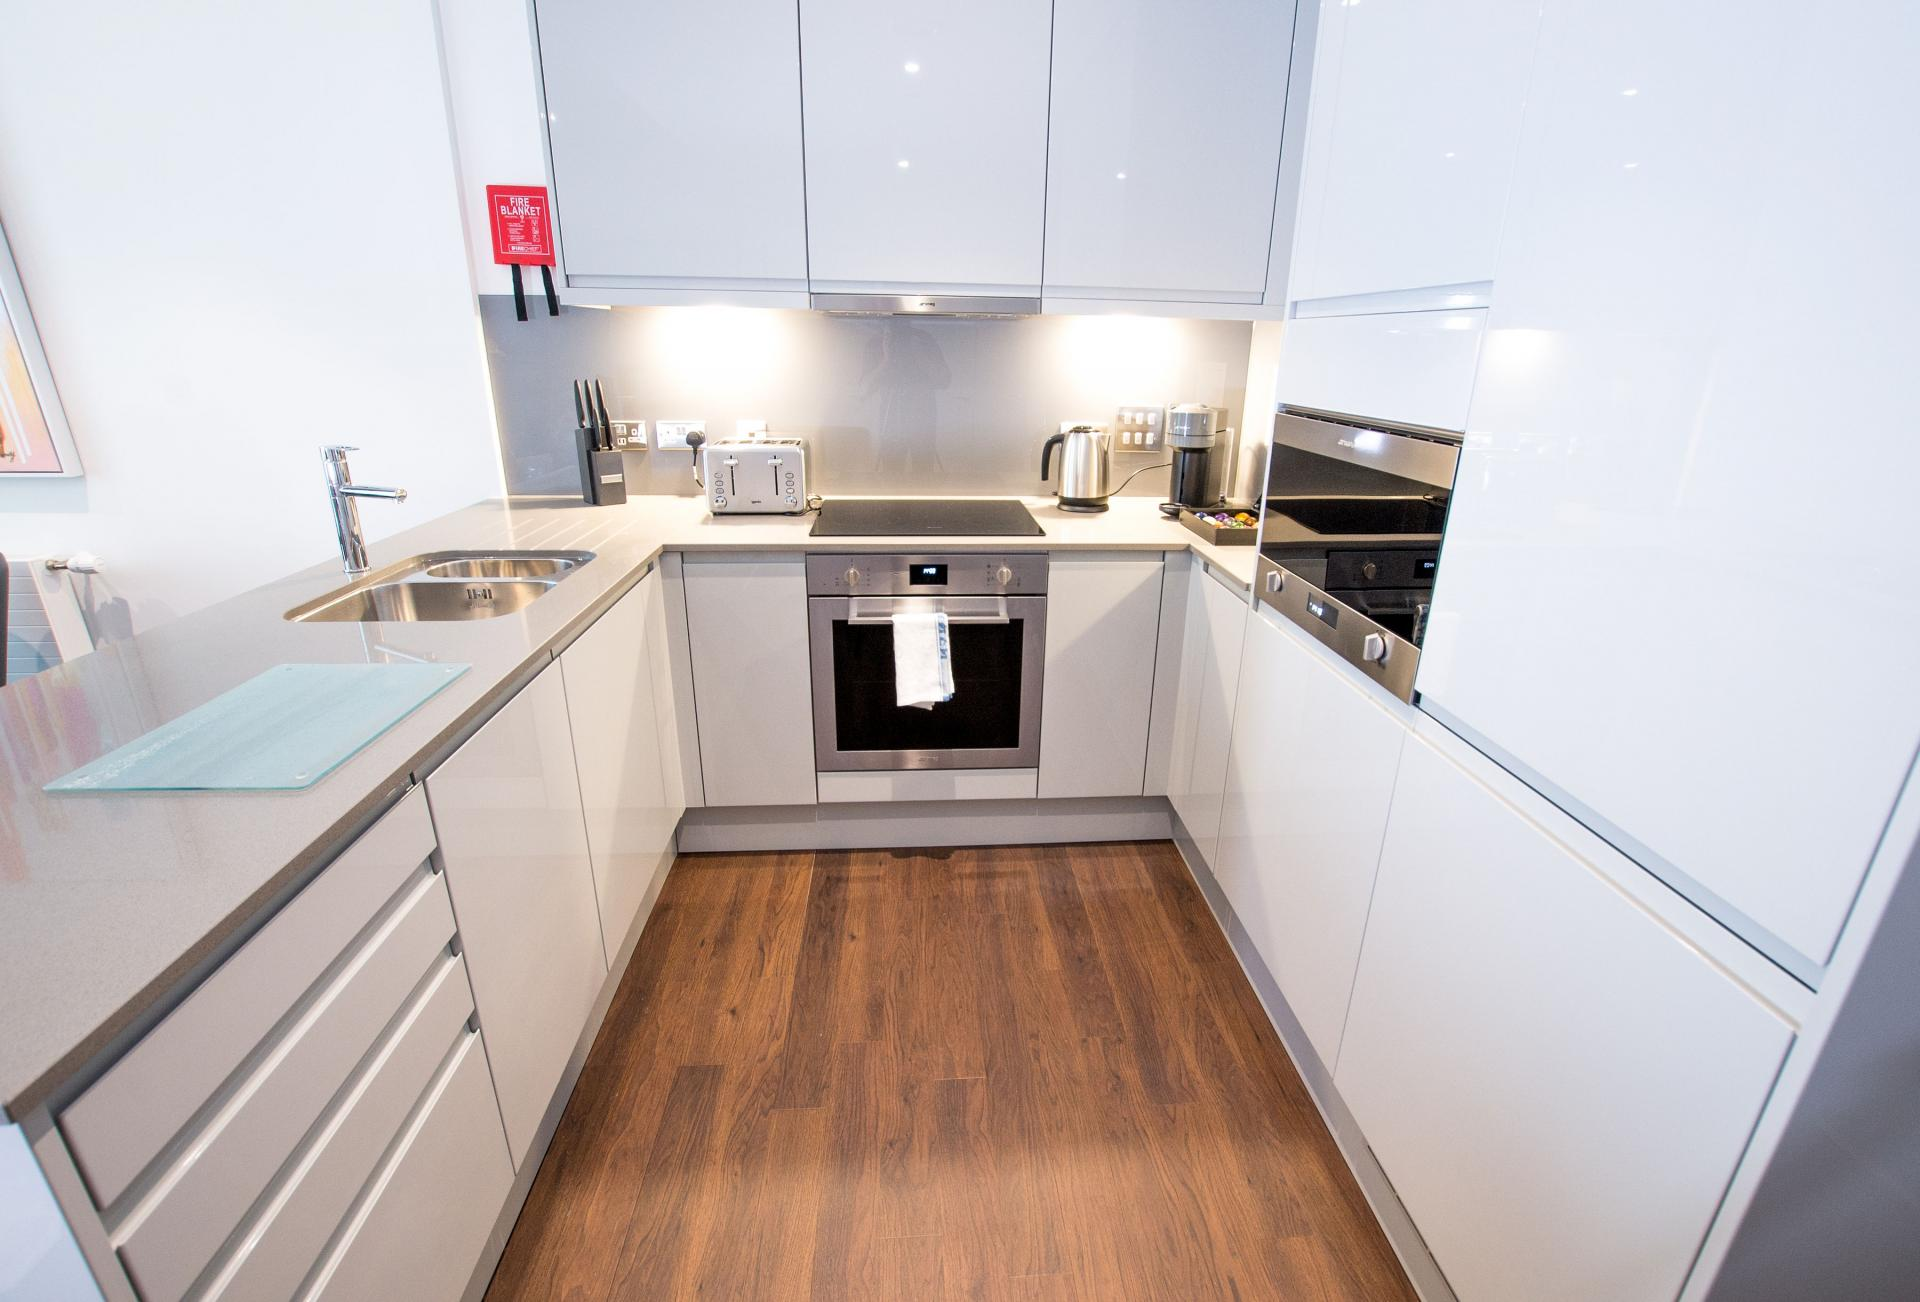 Kitchen at Canary Wharf Apartments By Charles Hope, Canary Wharf, London - Citybase Apartments